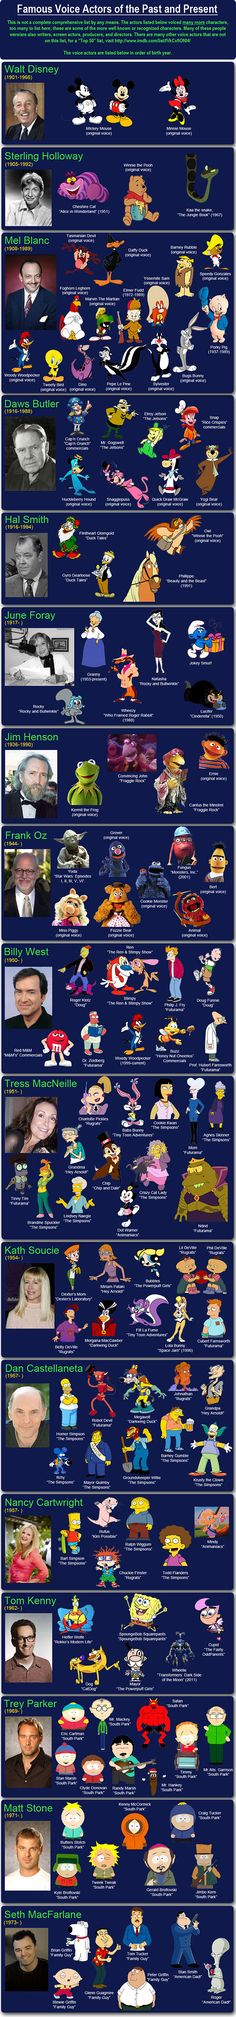 Famous Voice Actors